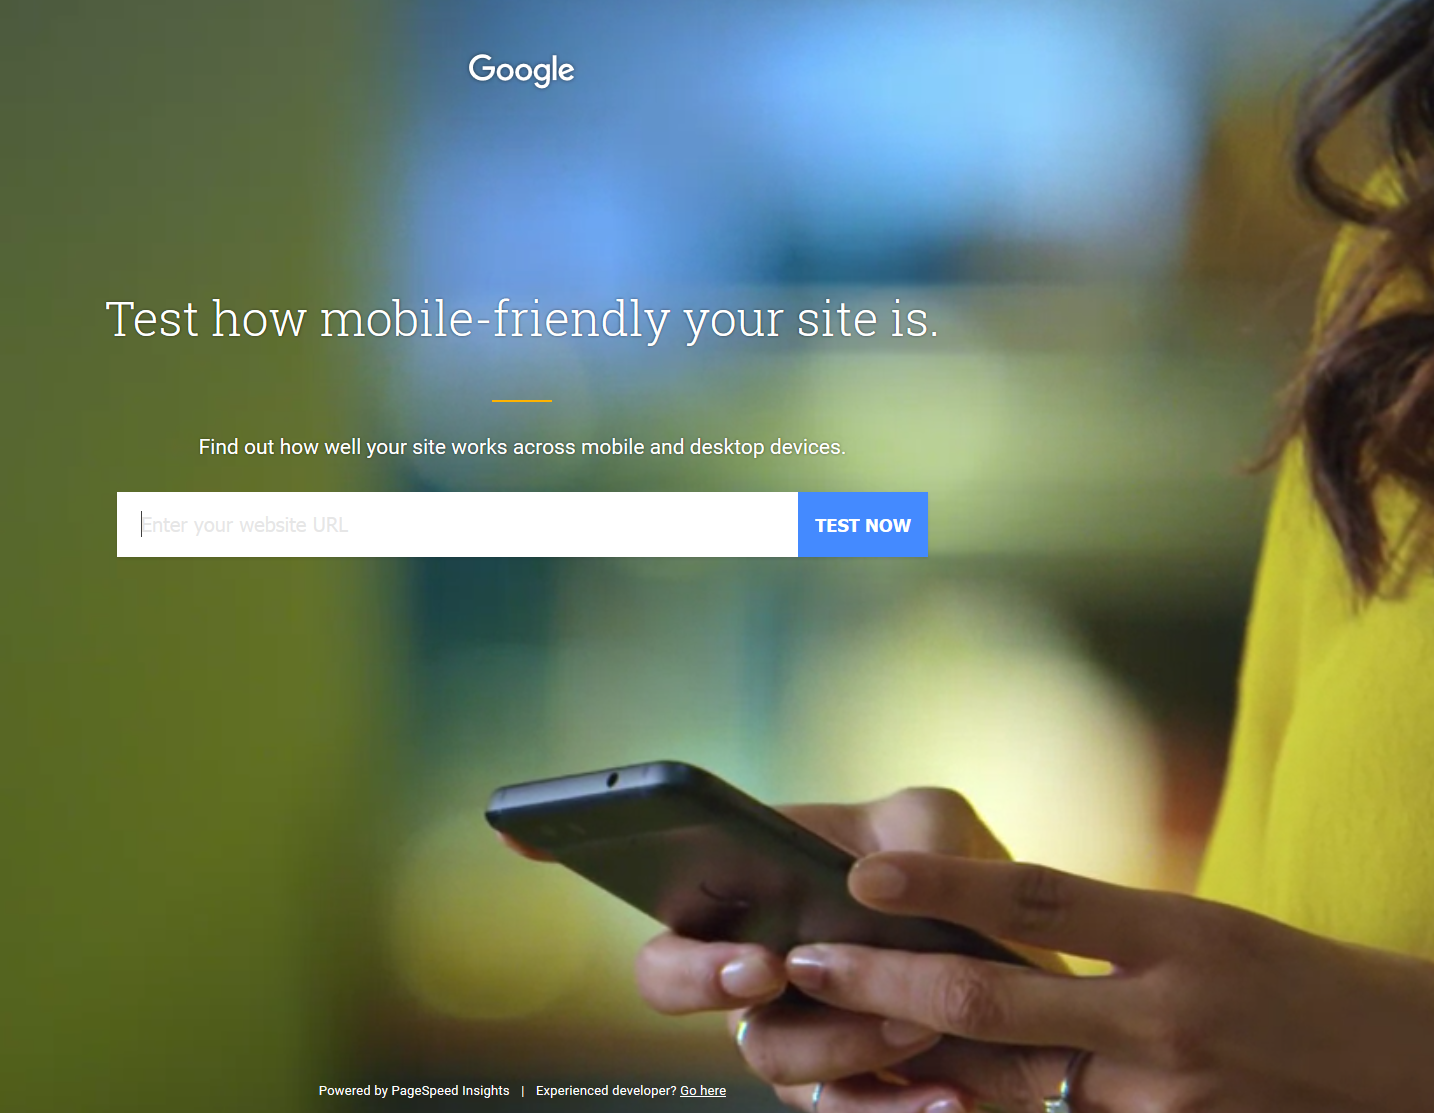 google-test-site-homepage-2